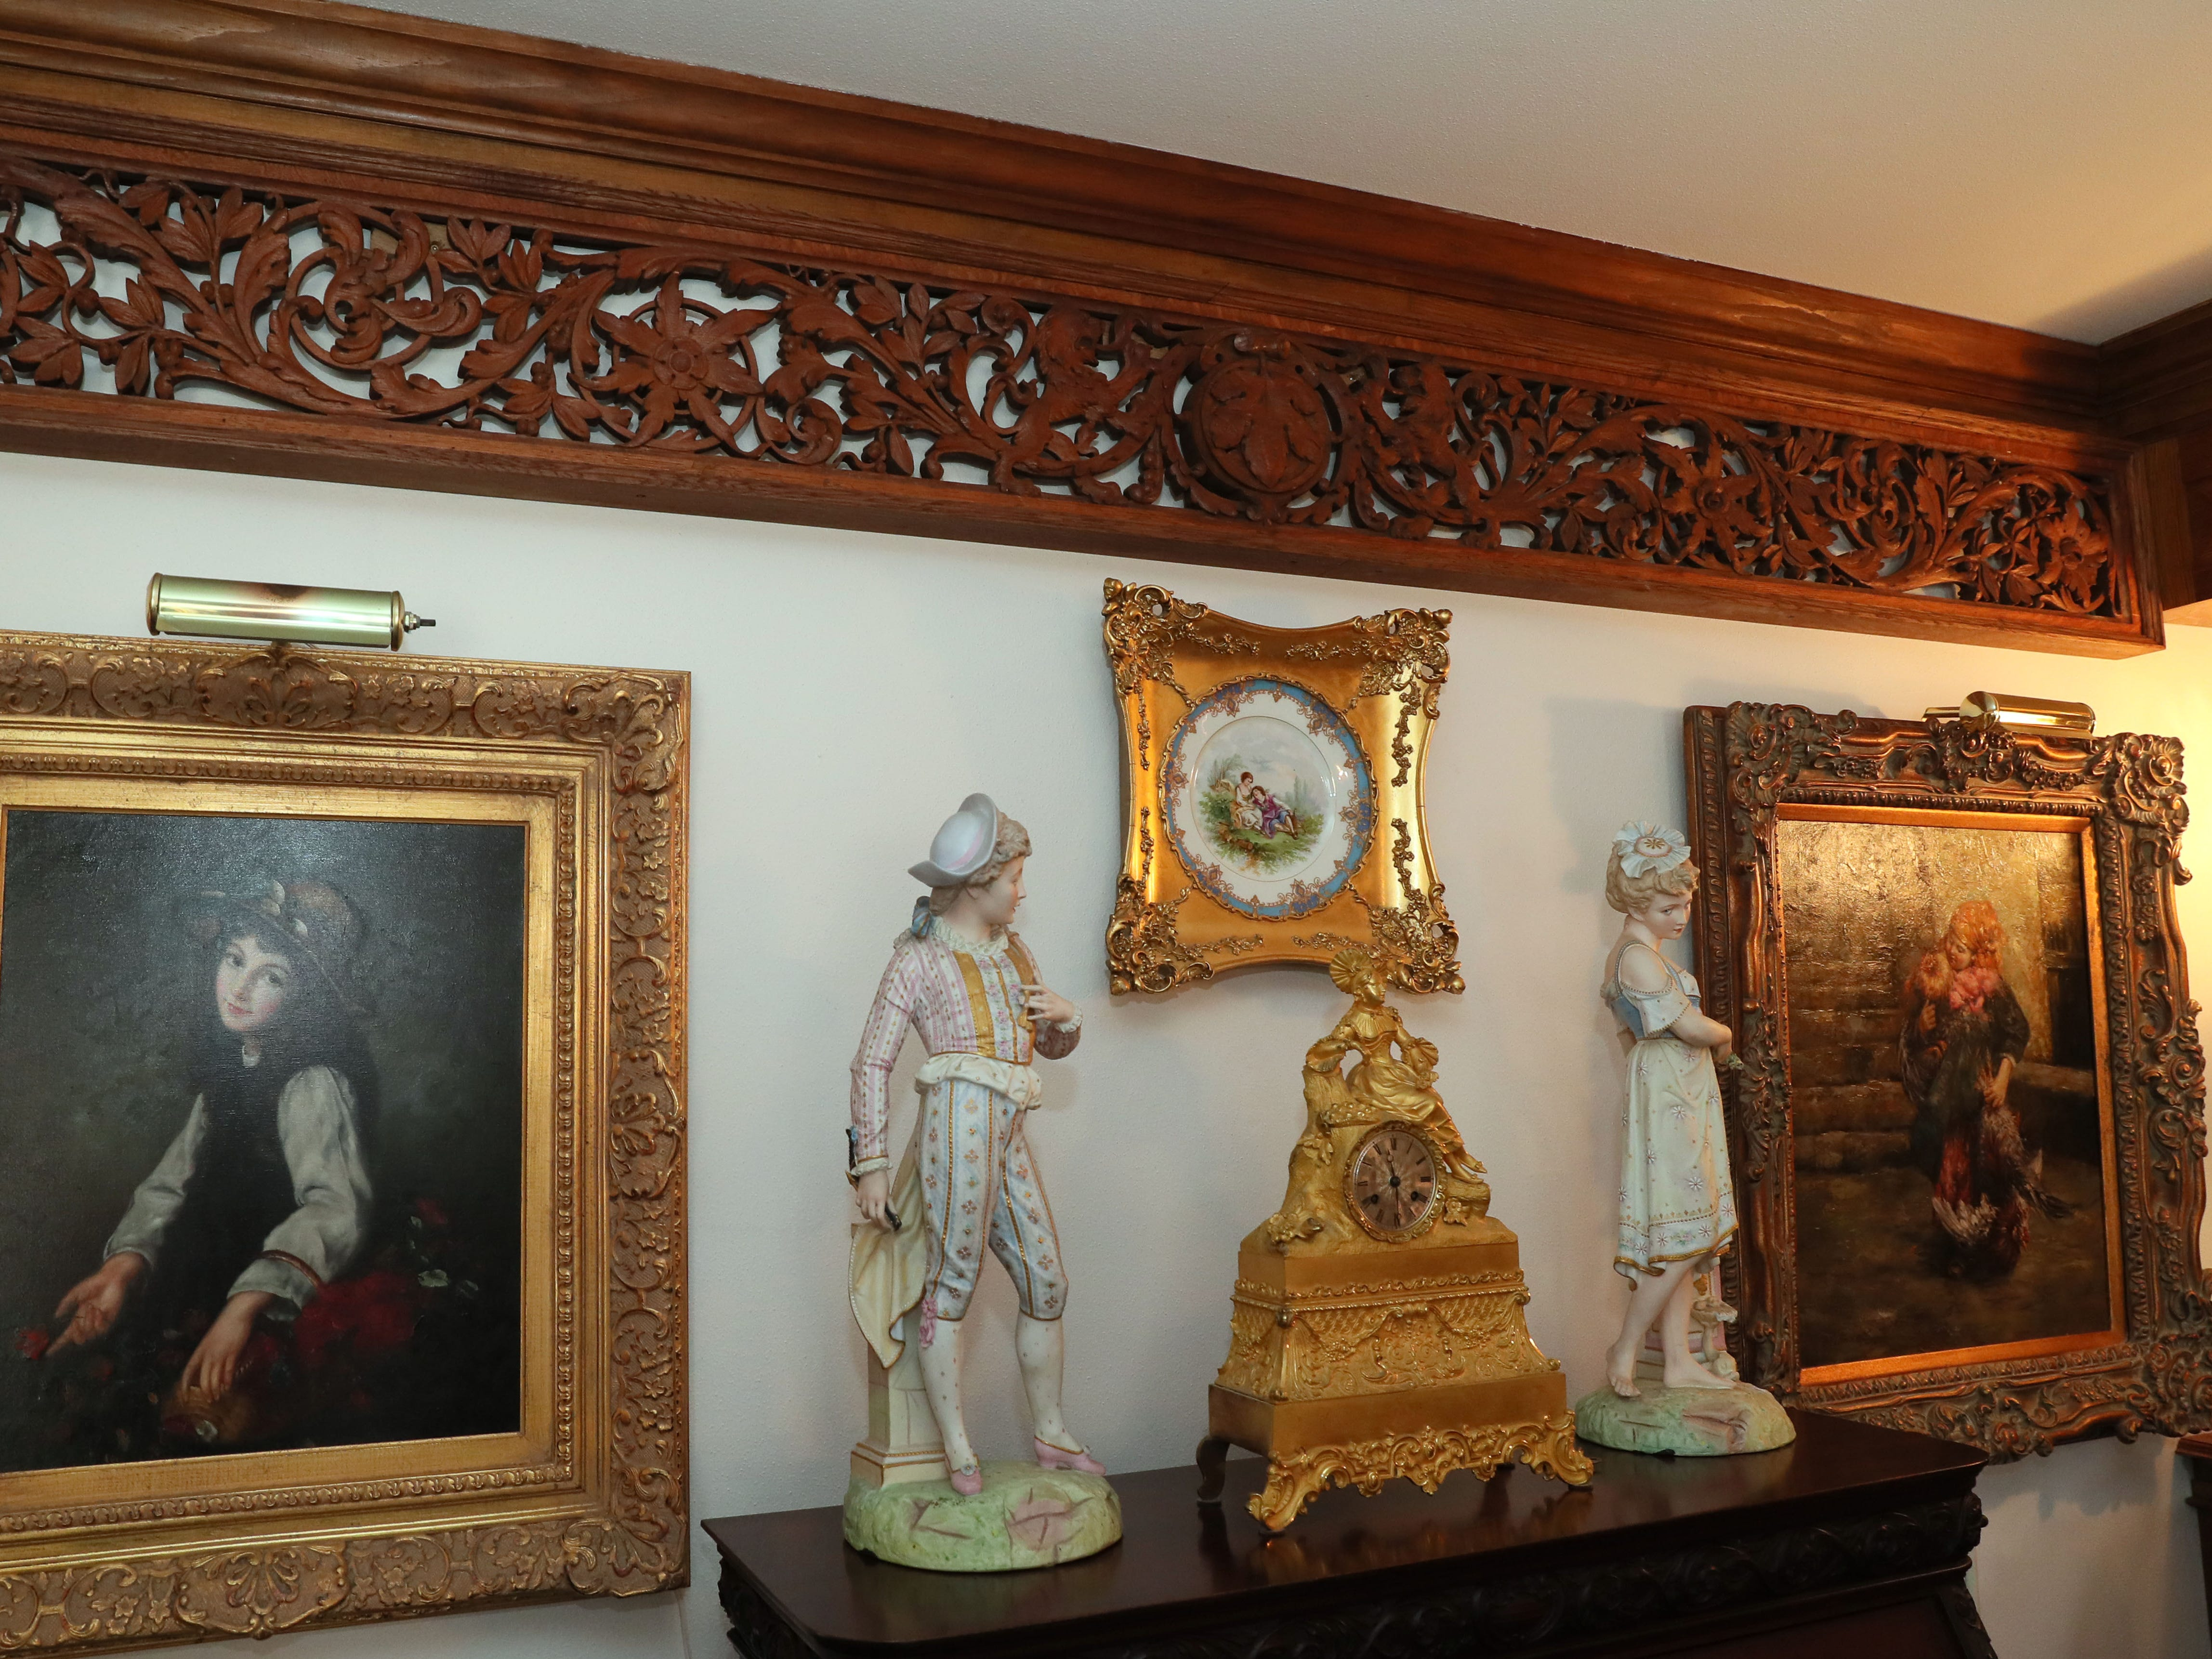 The decorative carving at top is from the Schandein Mansion. The French Monumental clock dates back to the 19th century.